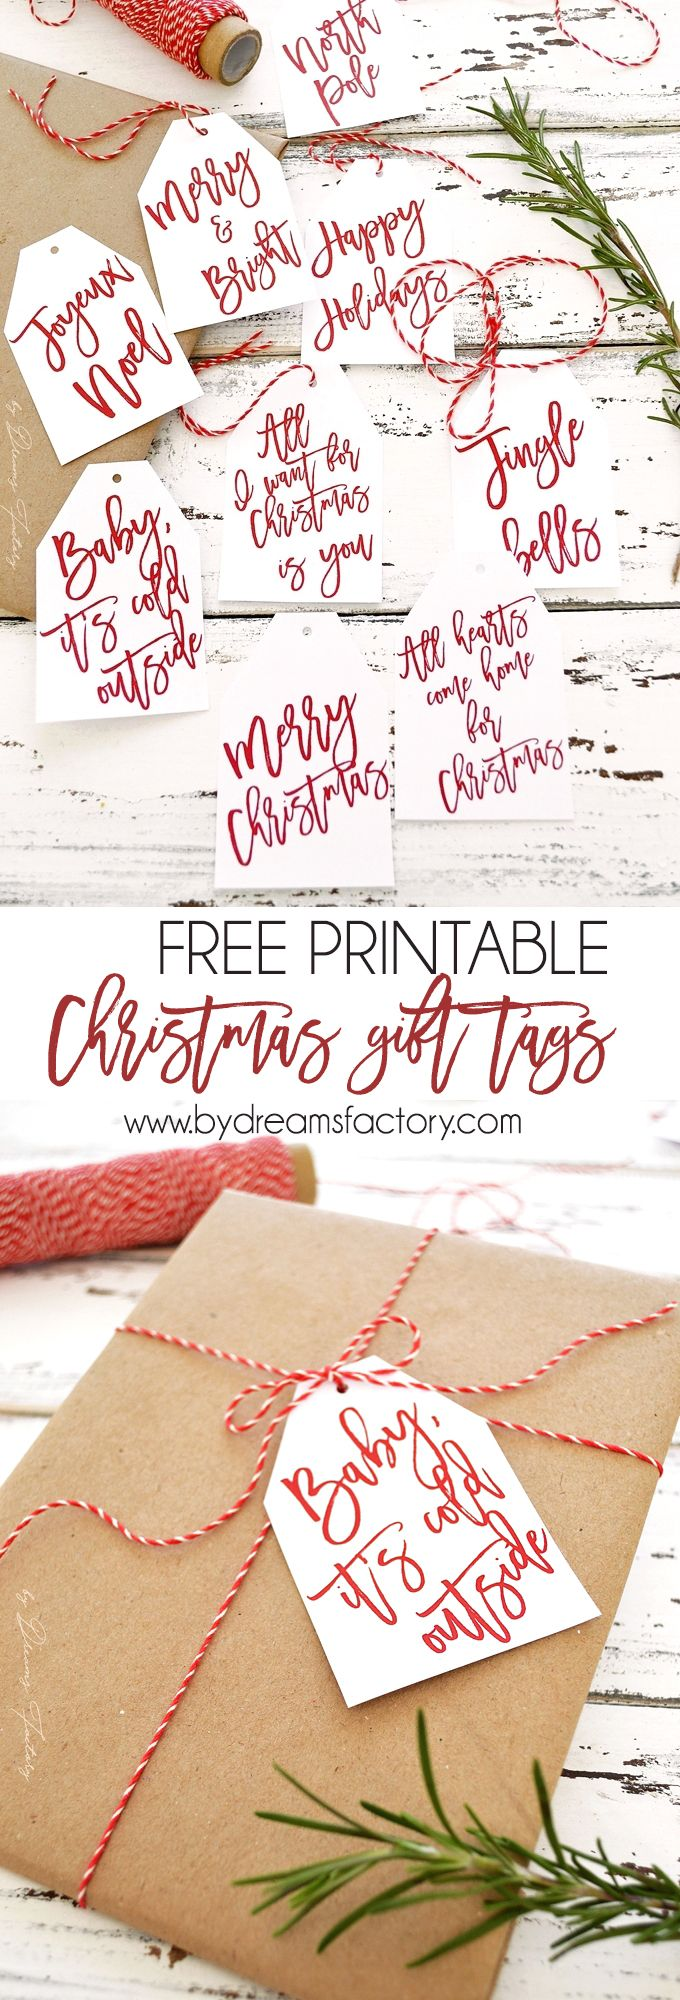 228 best freebies printables images on pinterest free printables free printable christmas gift tags negle